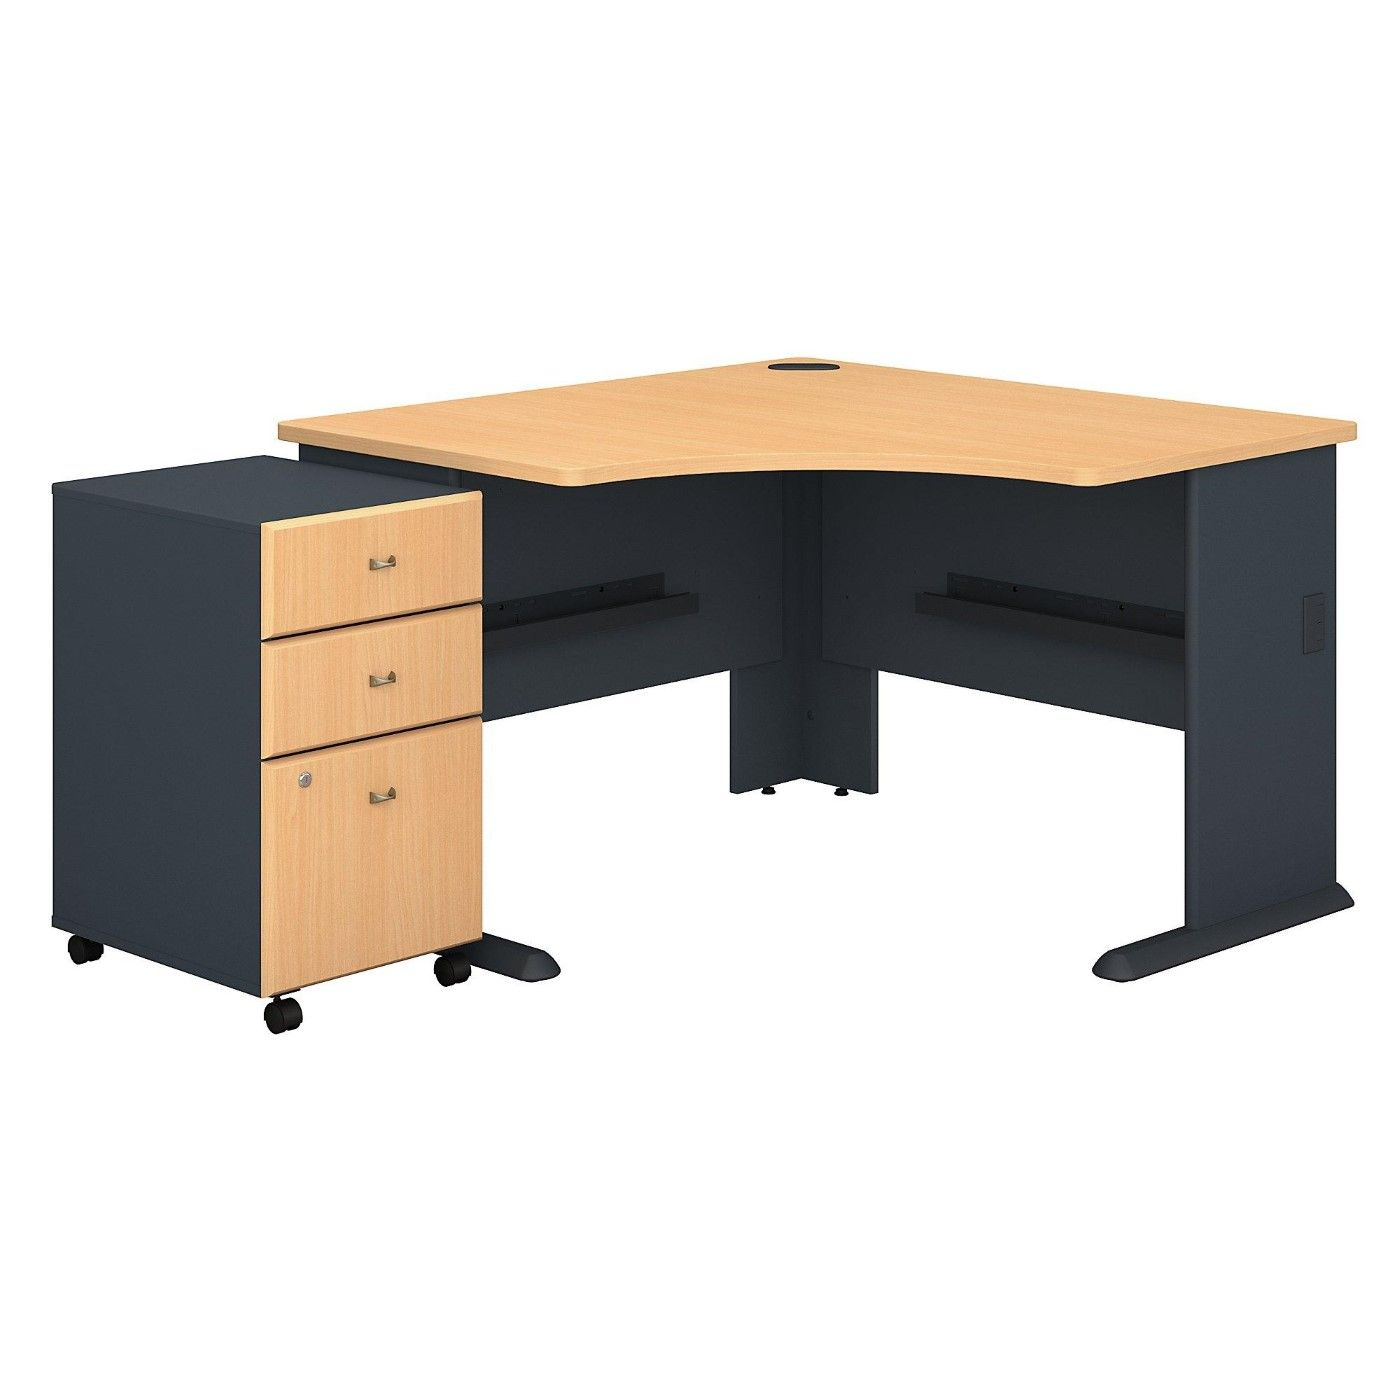 CORNER DESK 48W WITH MOBILE FILE CABINET EH-SRA035BESU. FREE SHIPPING IN 5-7 DAYS: